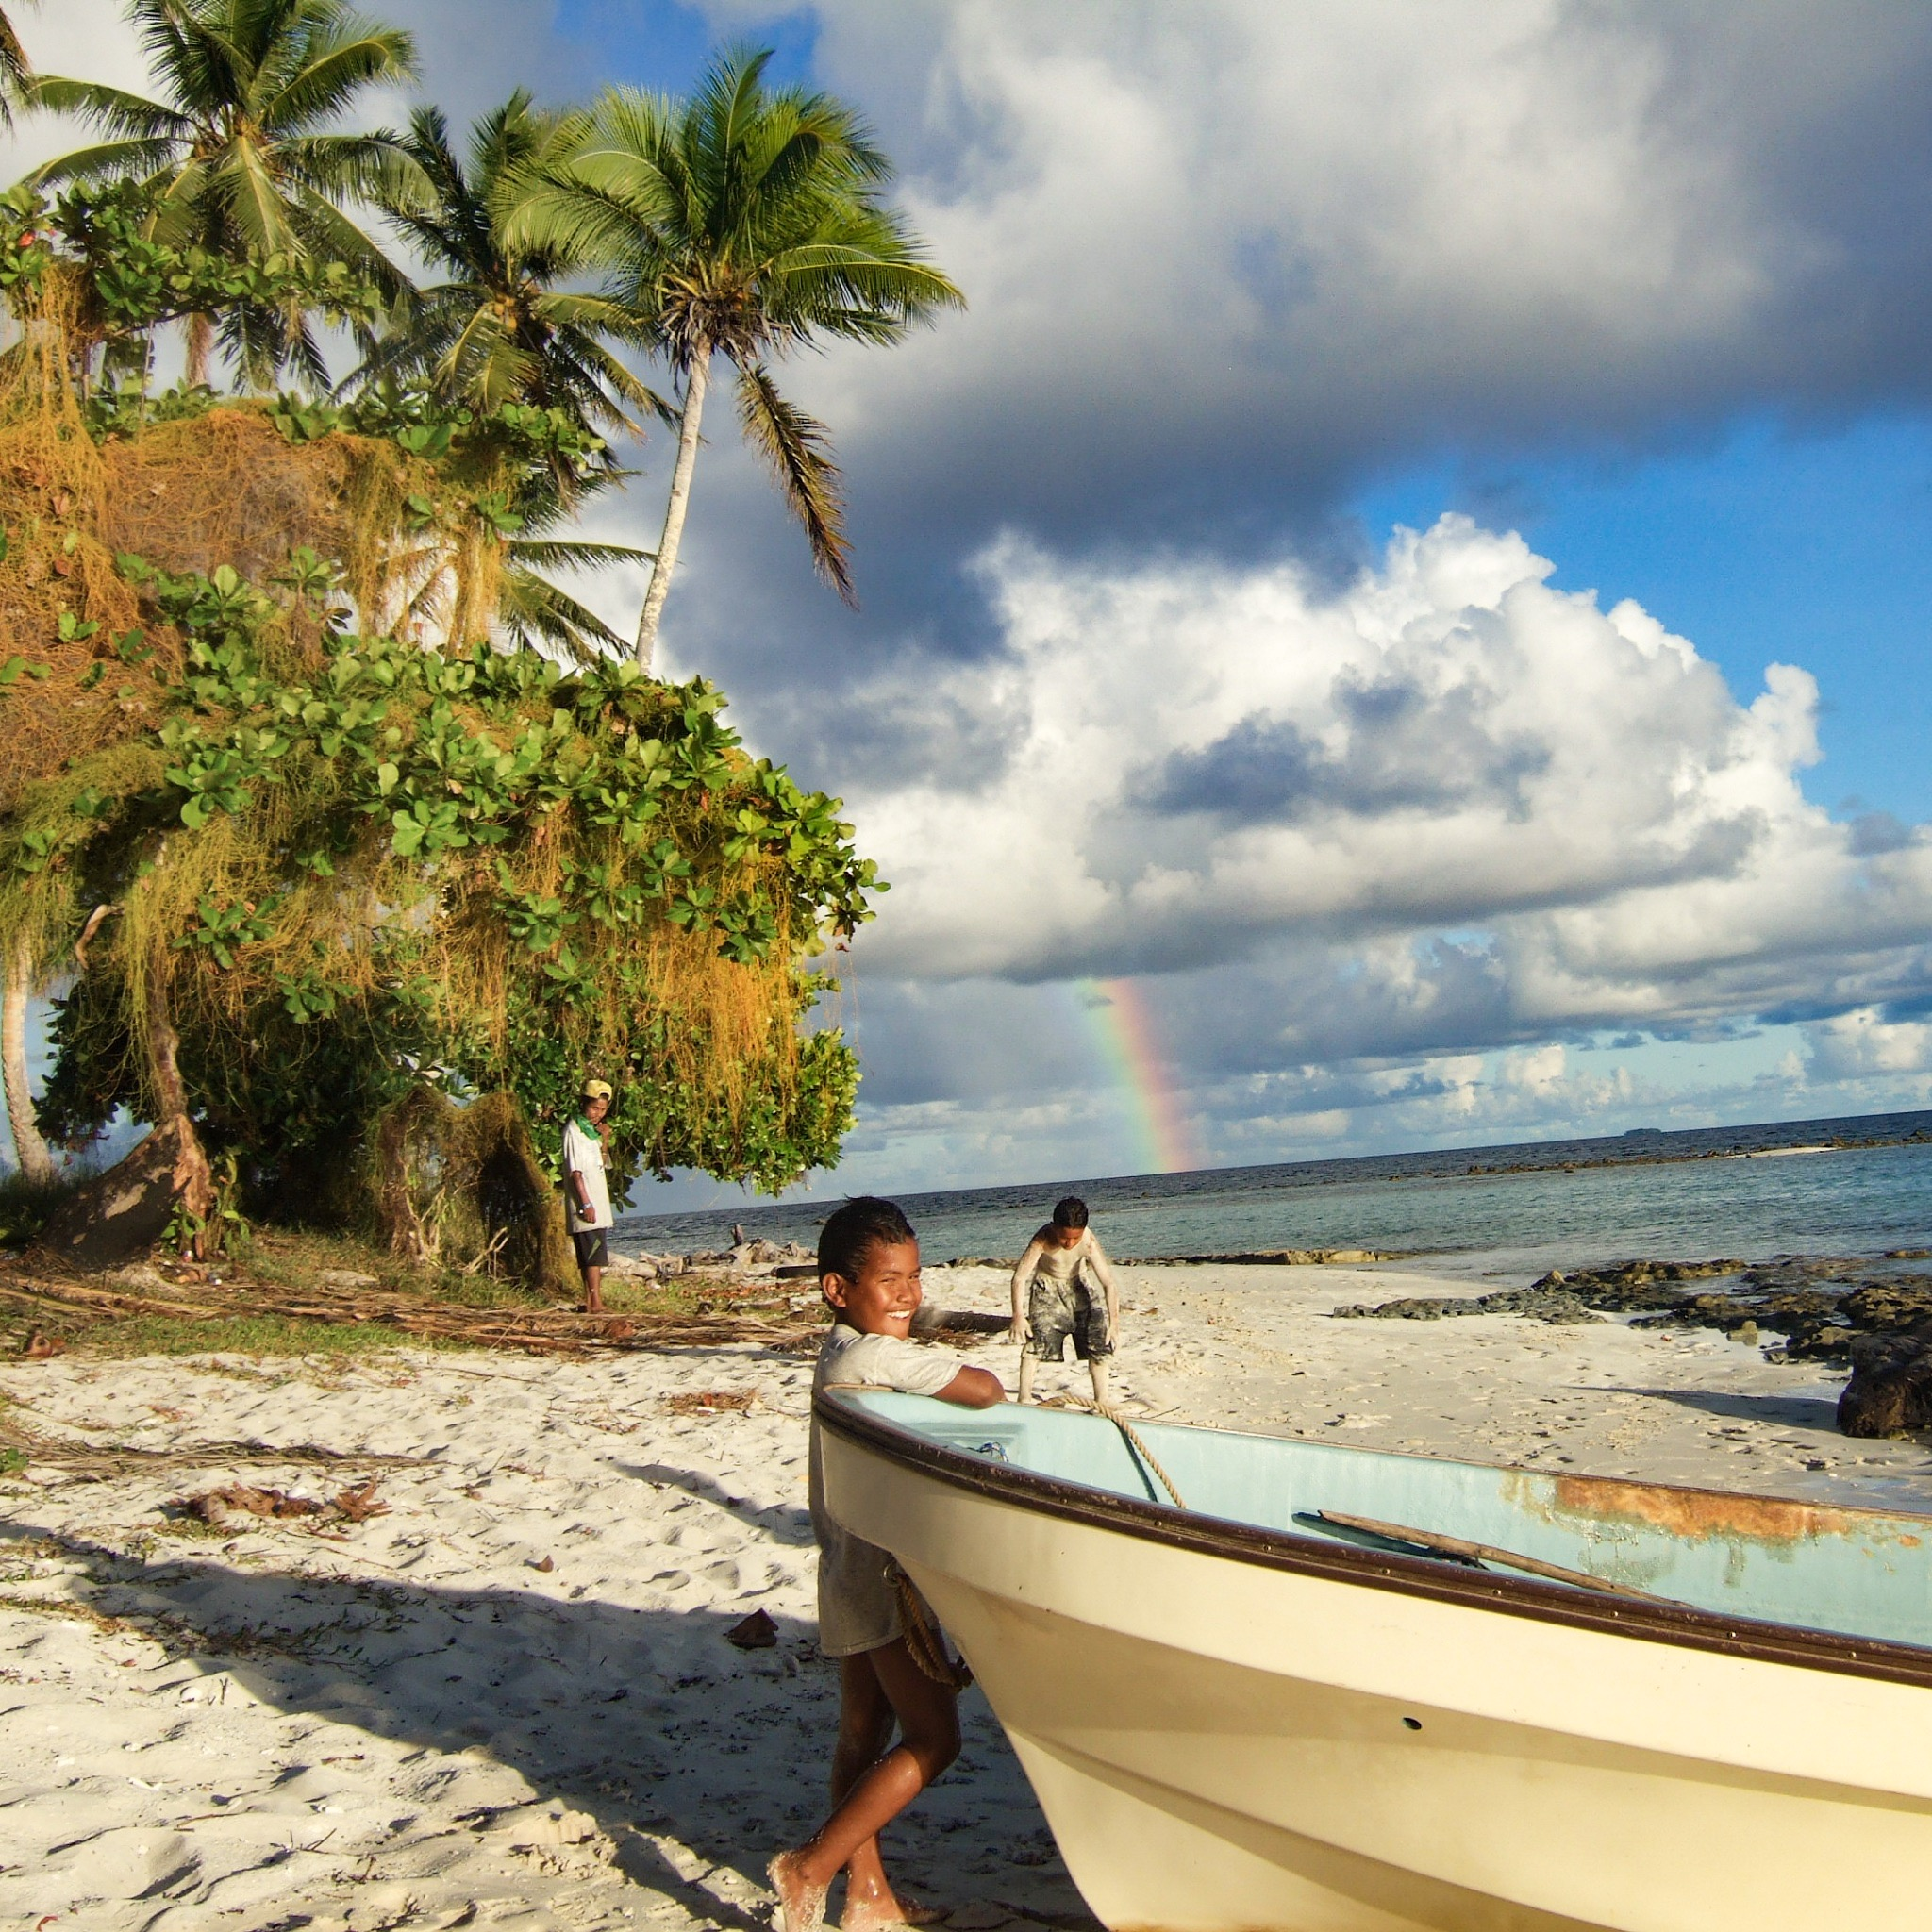 Rainbow view in Chuuk, Micronesia